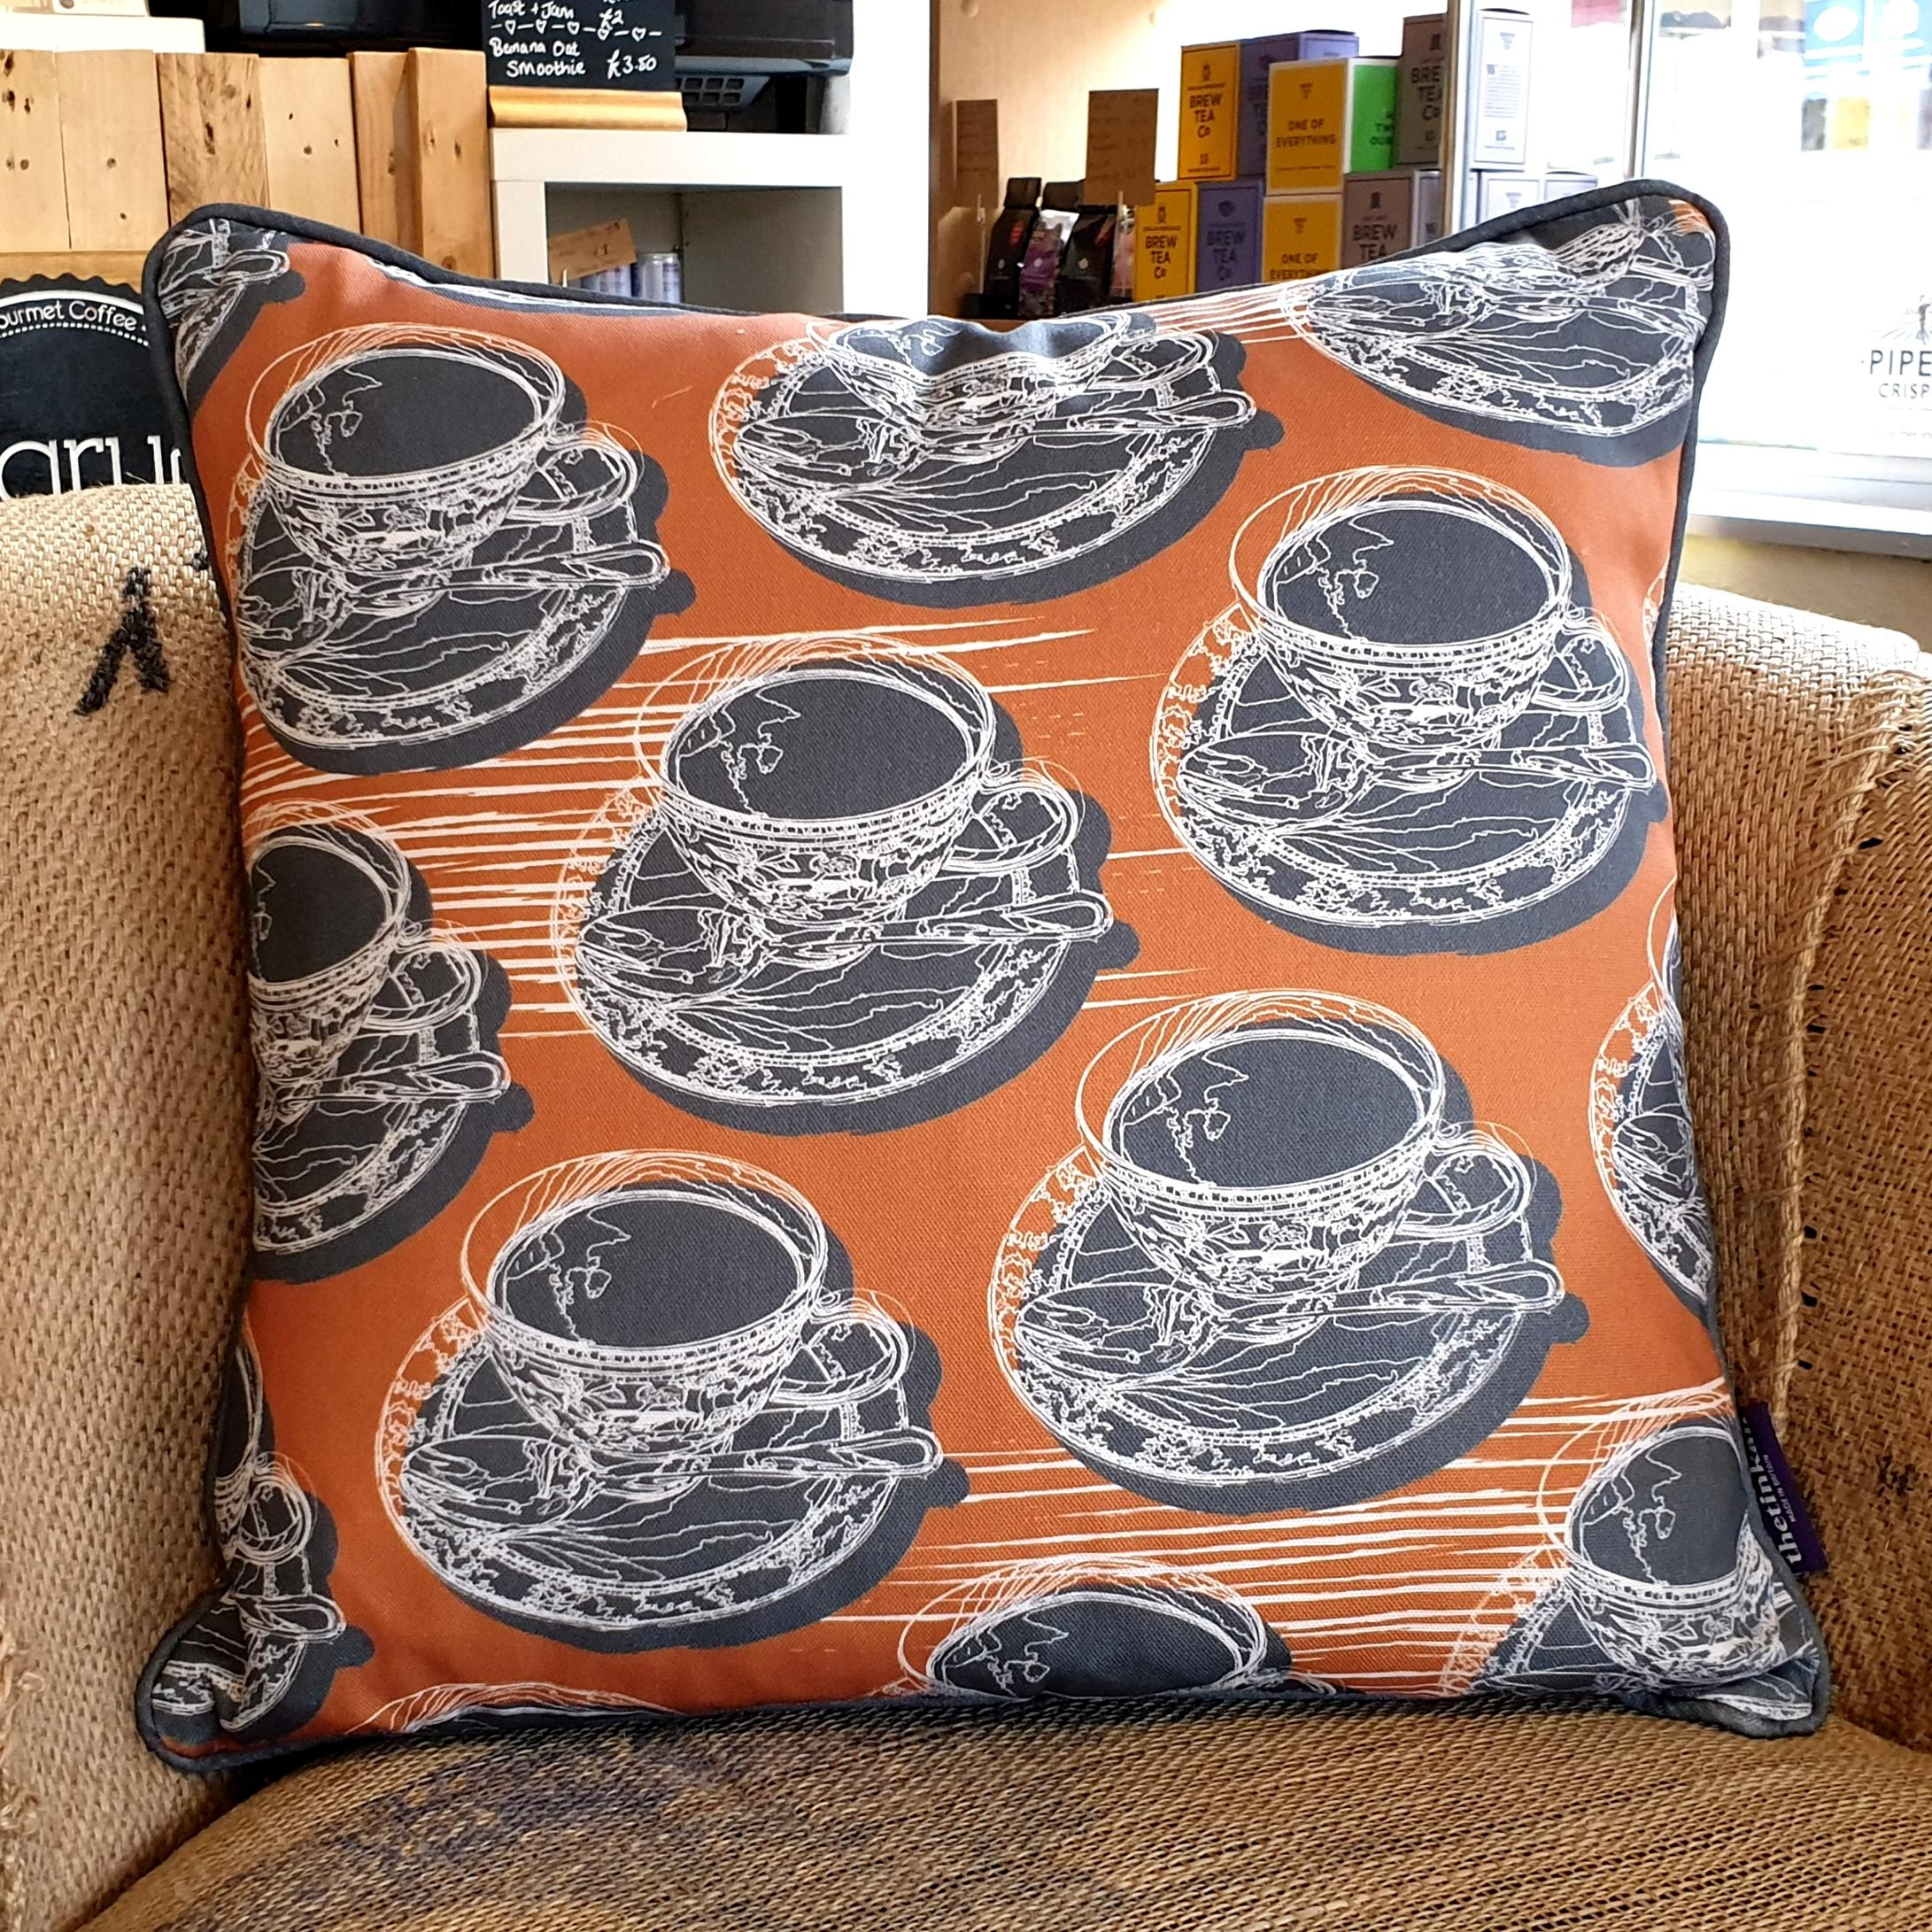 Double-sided warm rust orange 45cm square retro Afternoon Tea cushion with artistic white shards and grey handcrafted piping designed by thetinkan. White traced outline of multiple British teacups and saucers each colour filled in charcoal grey. Available with an optional luxury cushion inner pad. VIEW PRODUCT >>